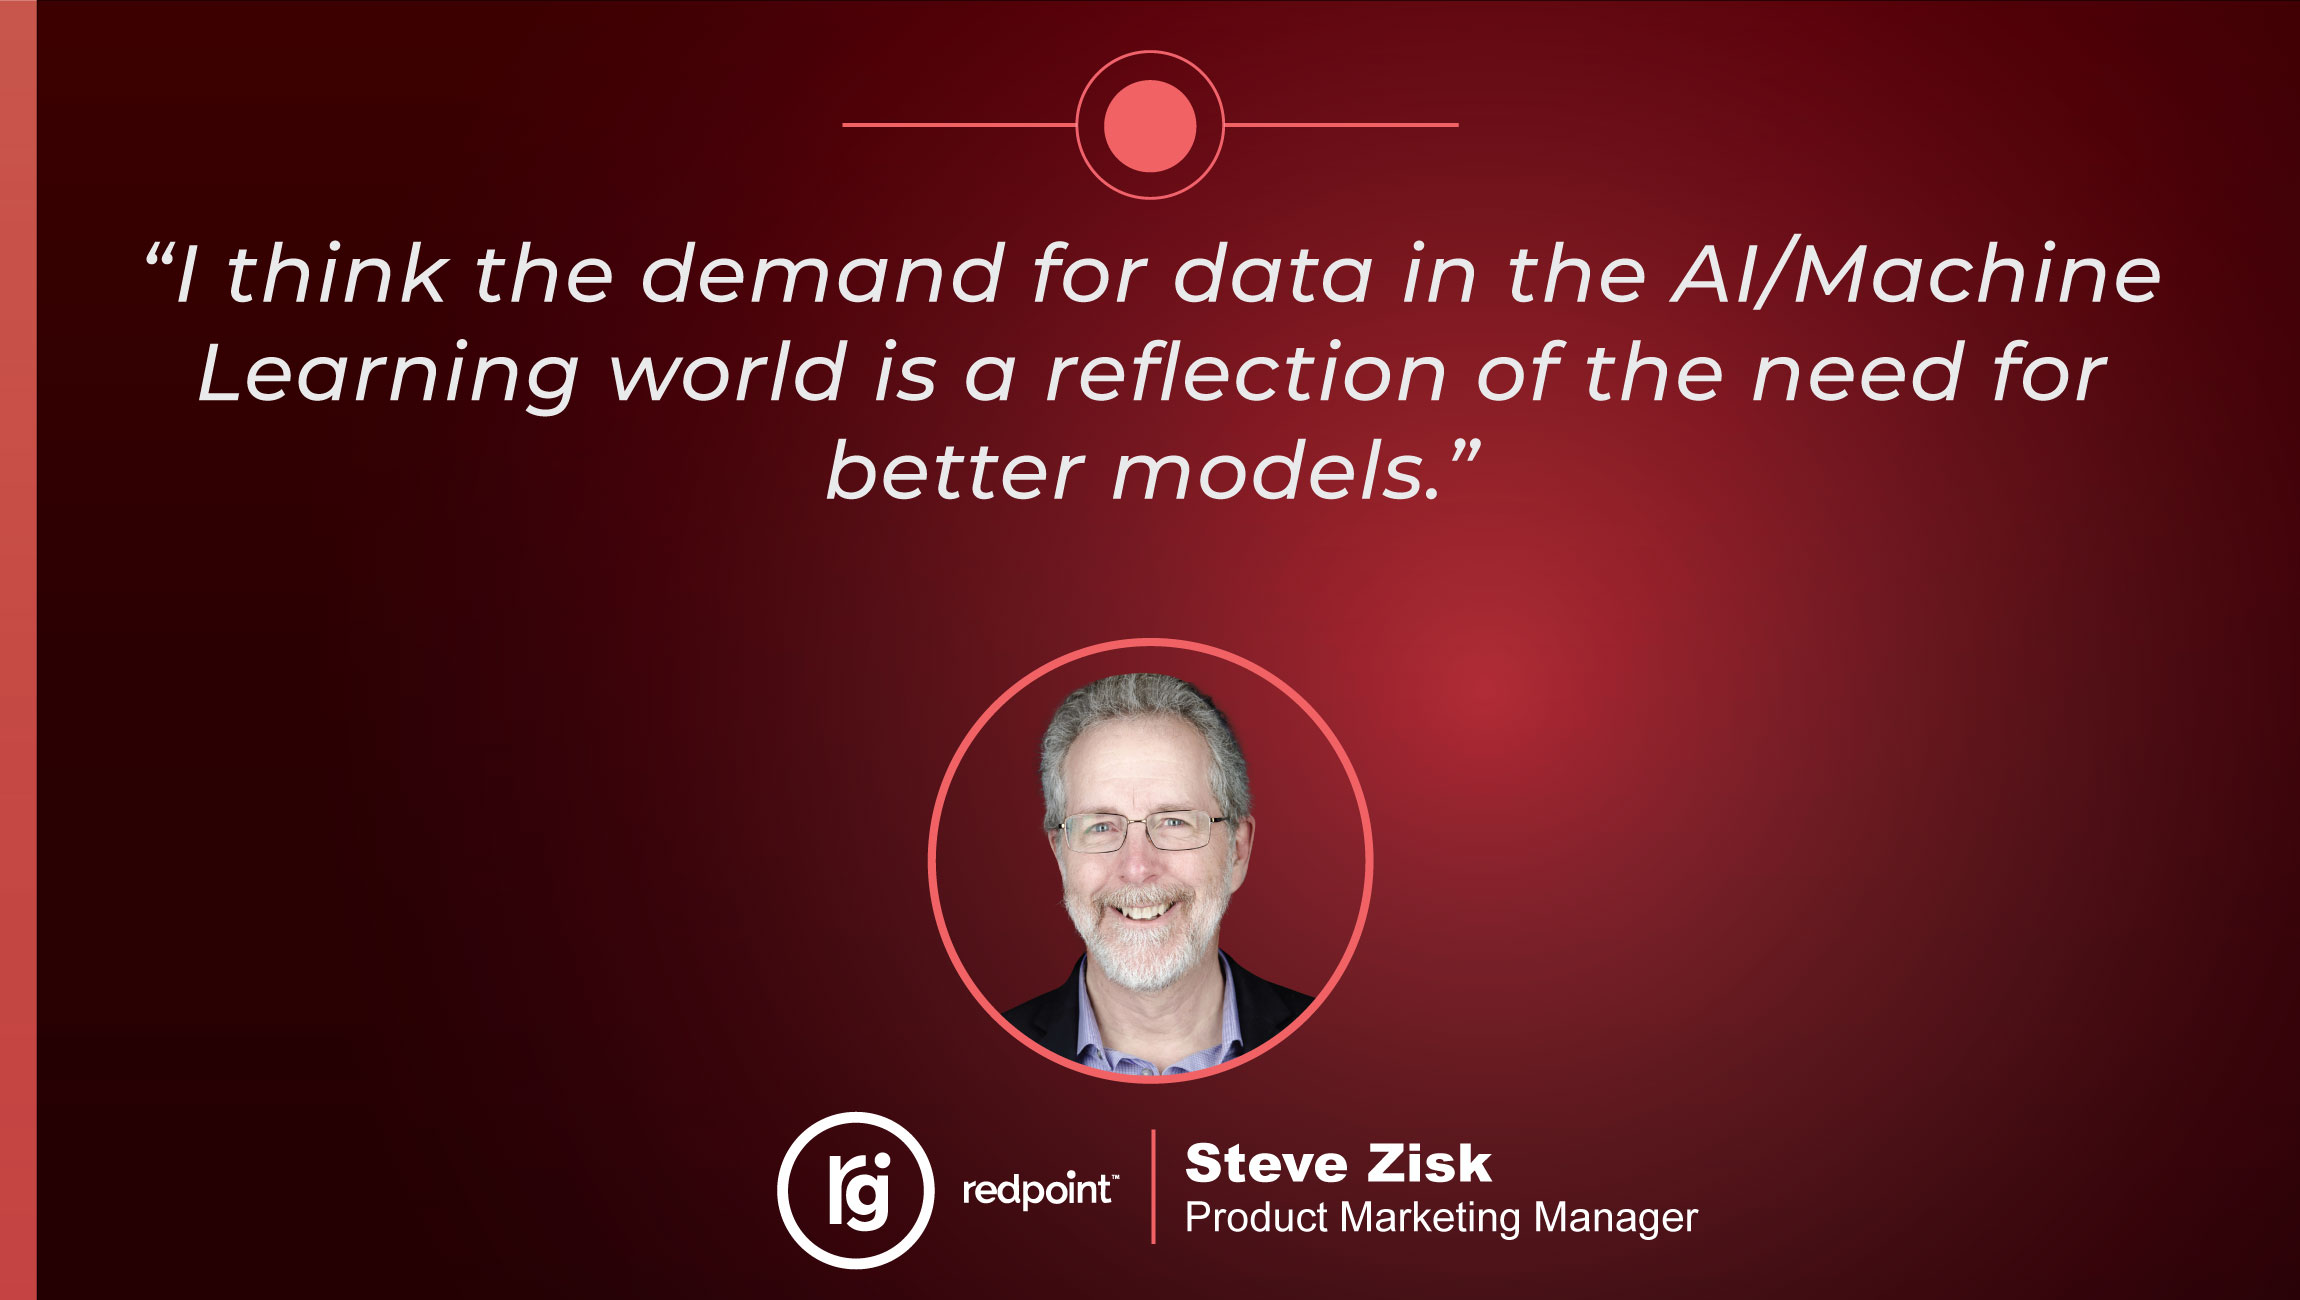 TechBytes with Steve Zisk, Product Marketing Manager at Redpoint